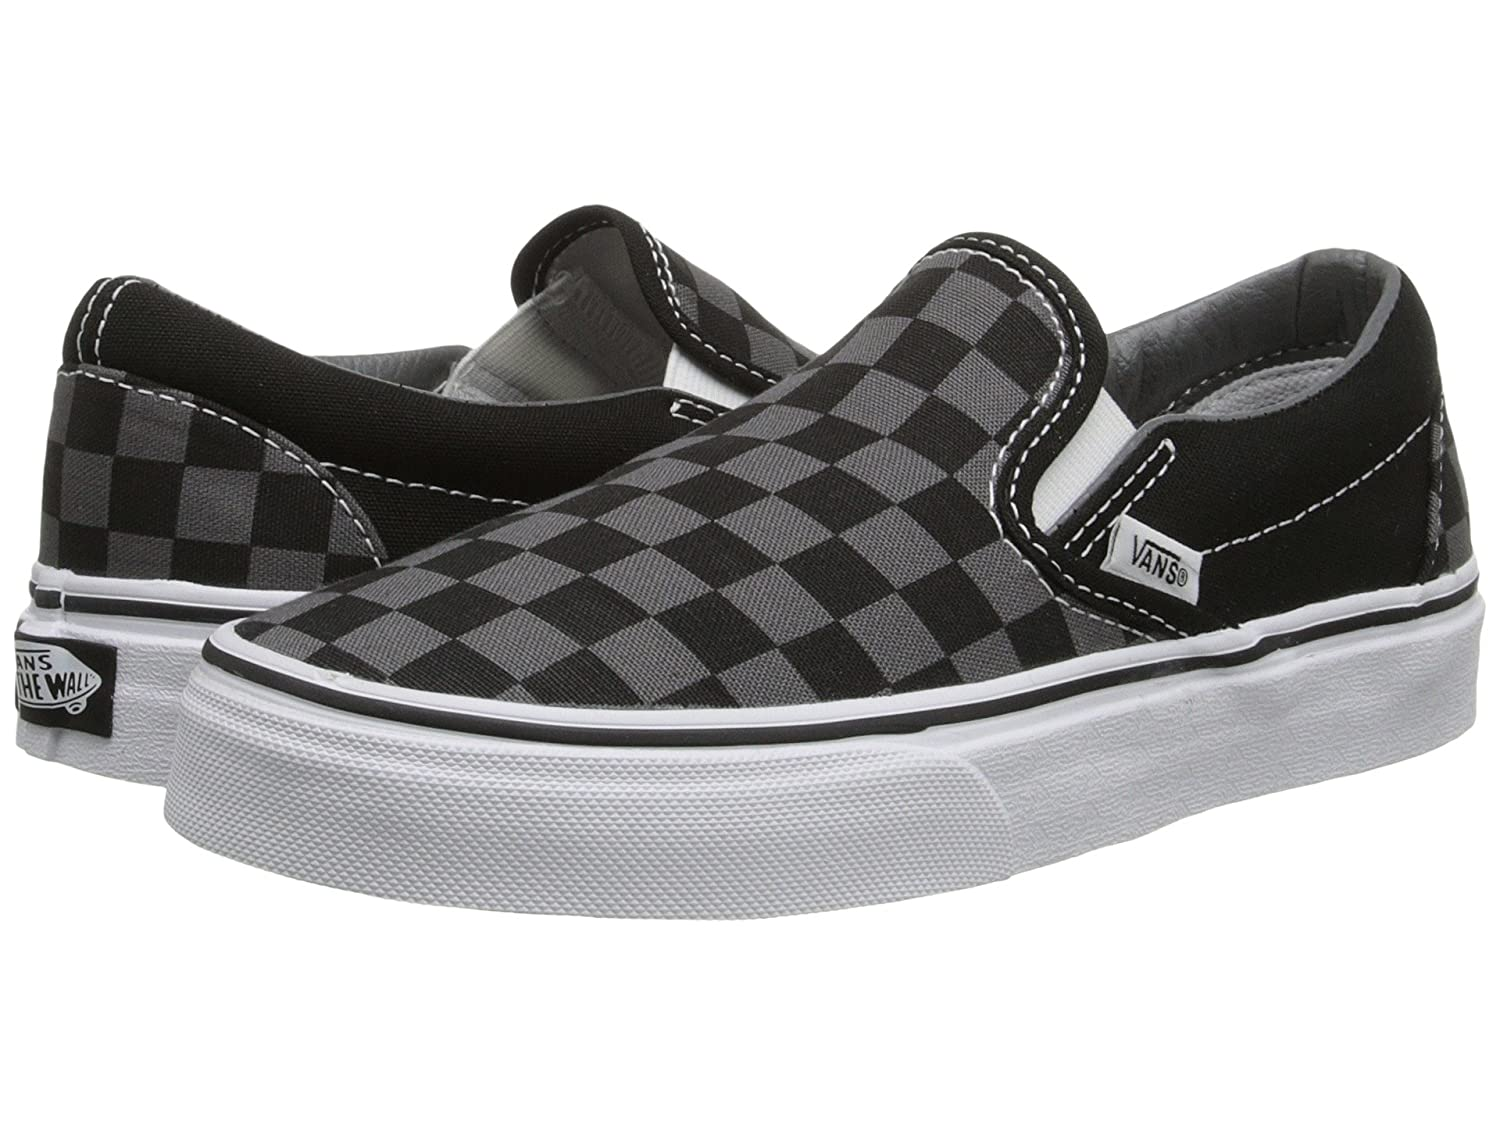 Vans Men's Classic Slip On (Suede & Suiting) Skateboarding Shoes B01M6TMNZM 11 M US Women / 9.5 M US Men|Black Pewter Grey Checkerboard